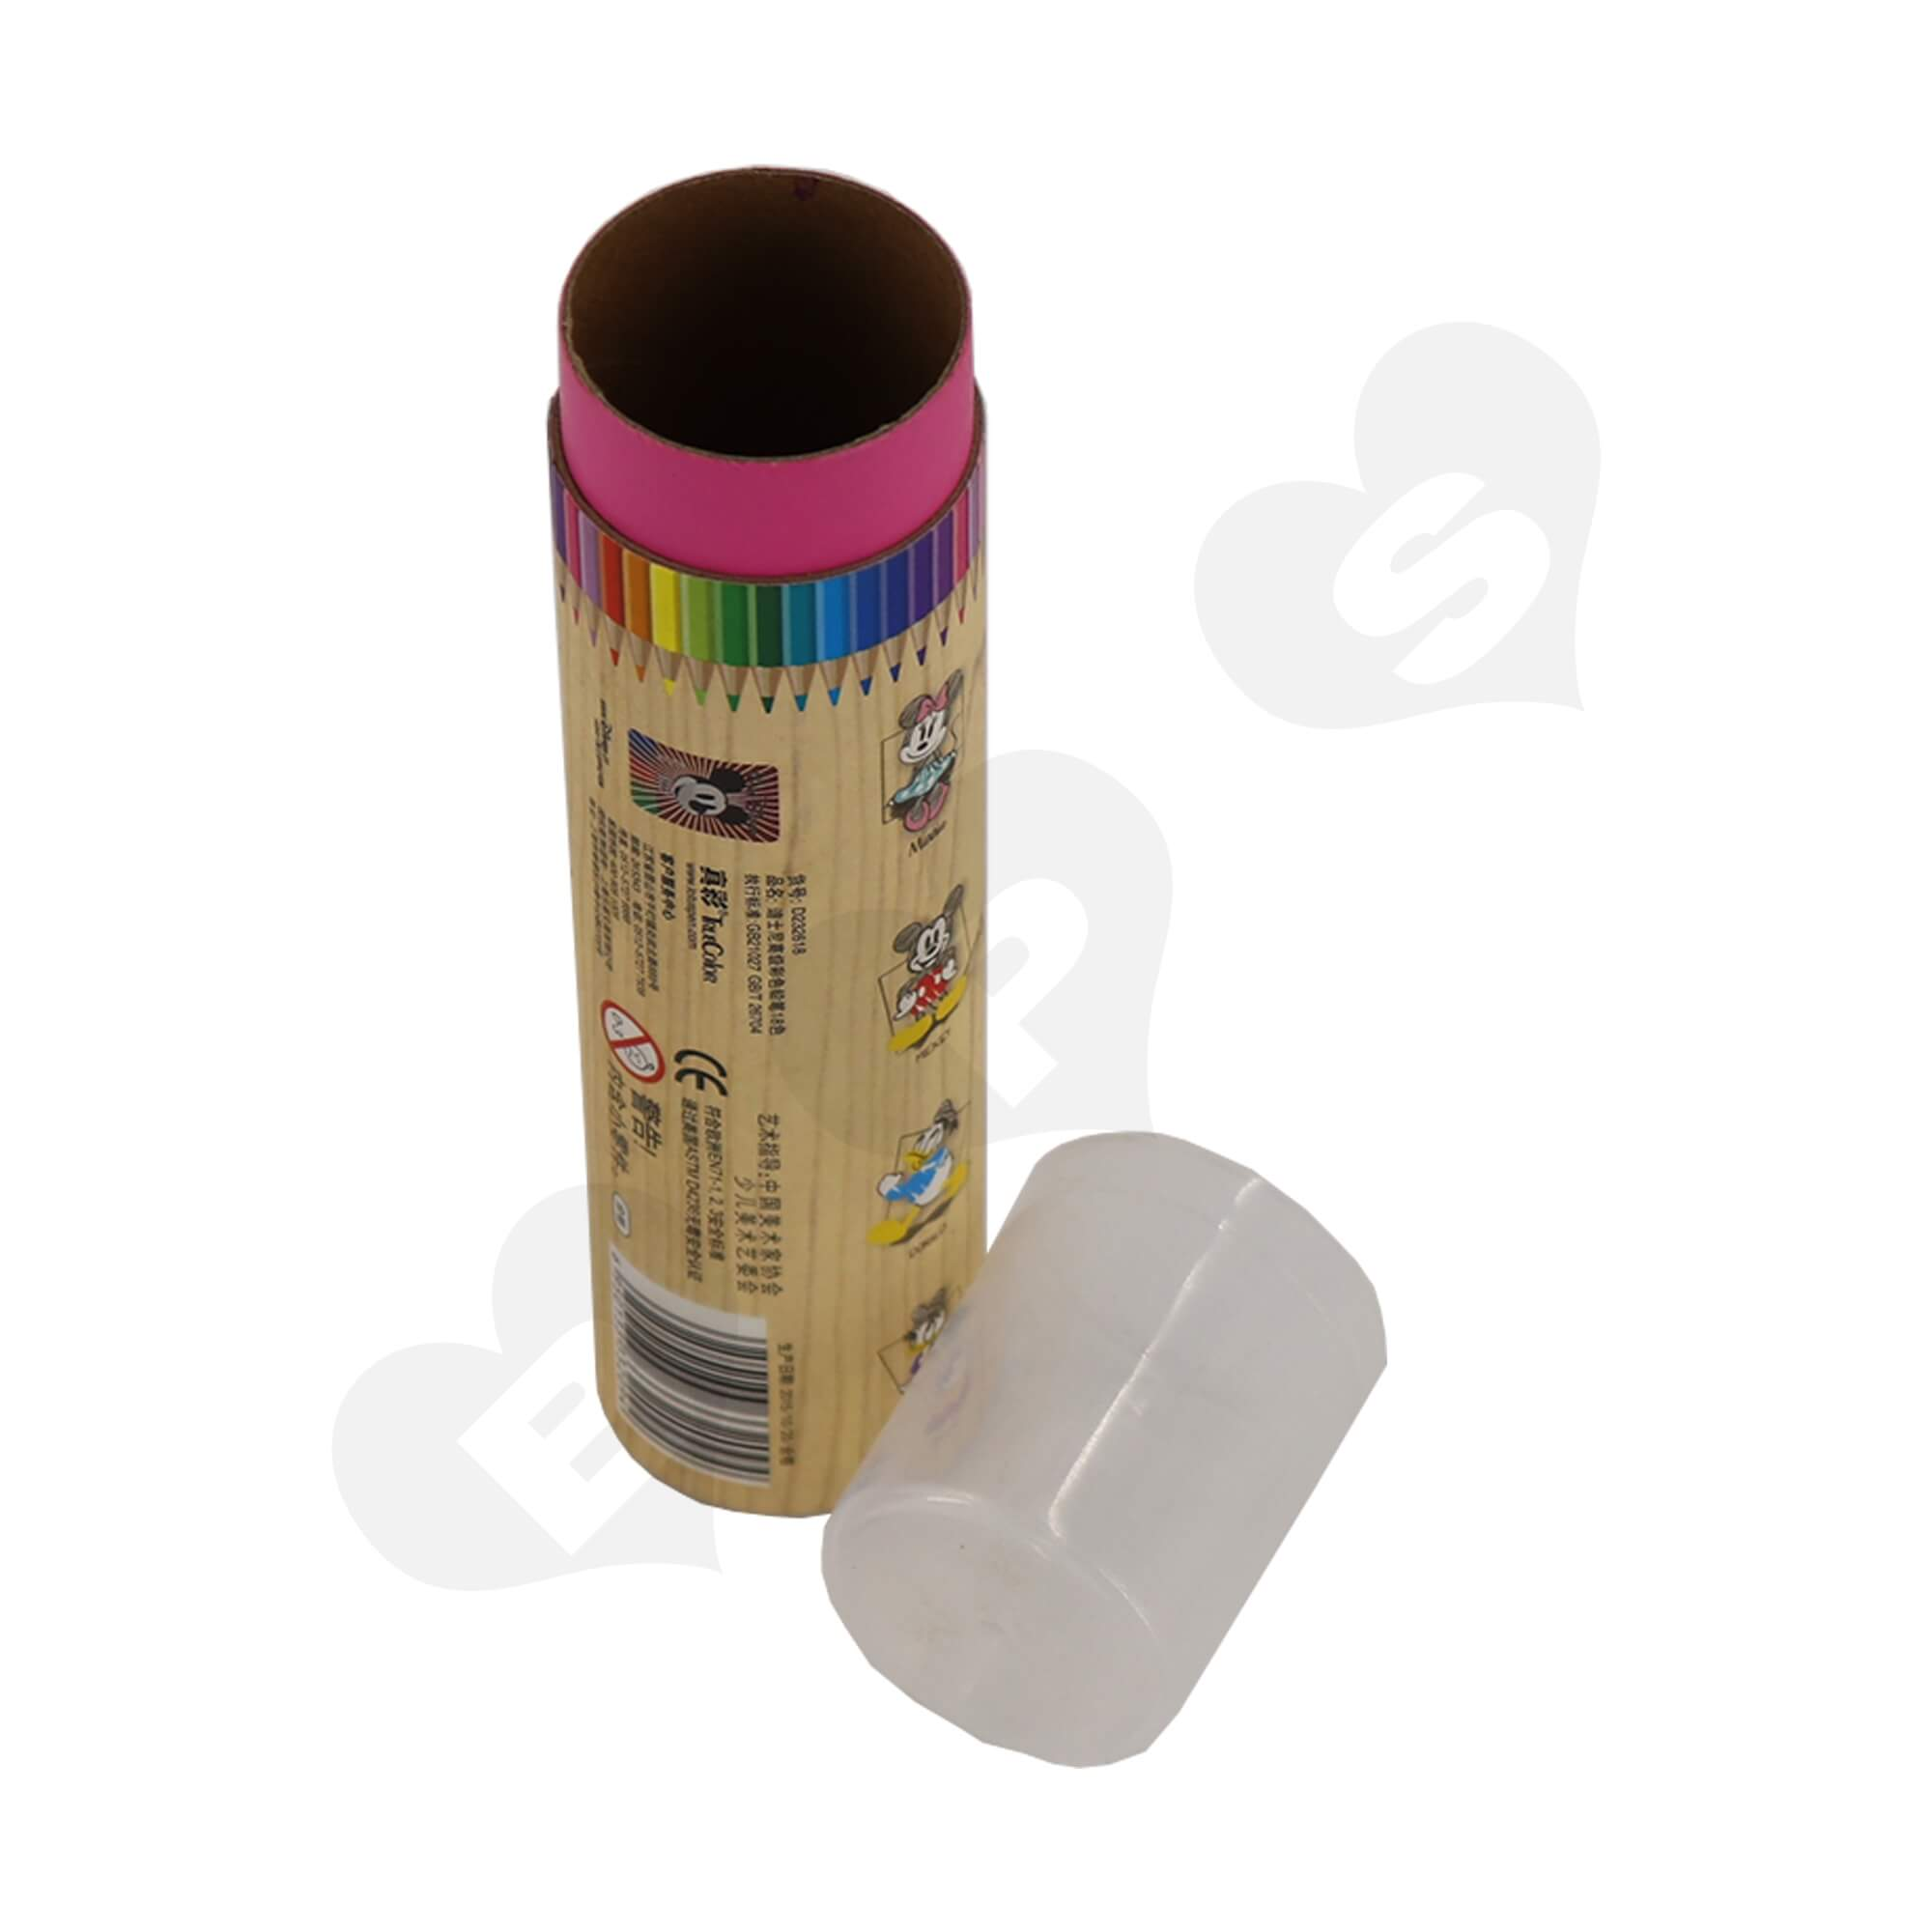 Branded Cardboard Cylinder With Plastic Lid For Packing Color Pencils Side View Three